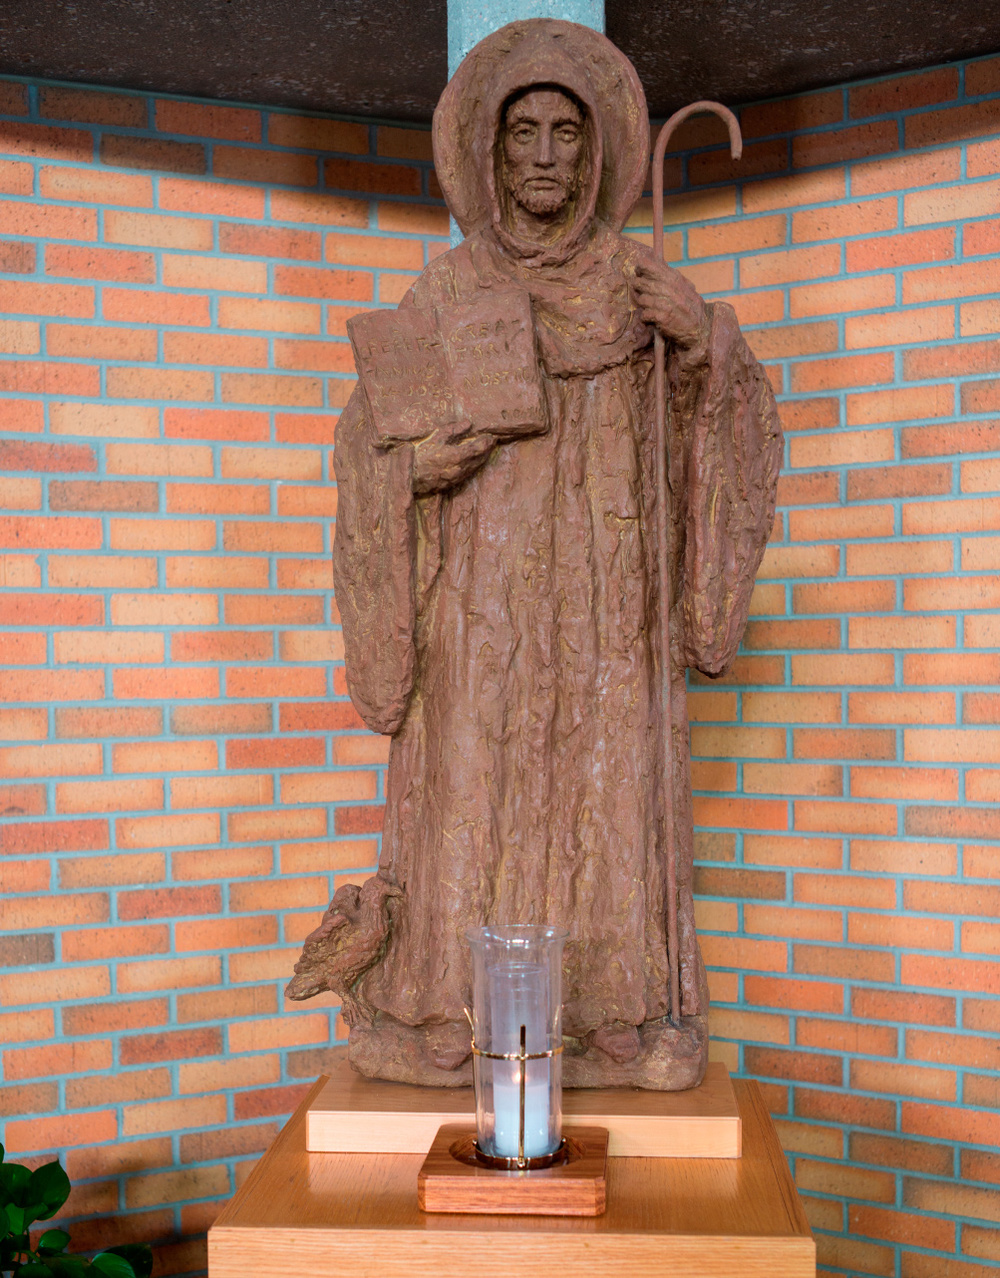 St. Benedict Statue in the Chapel